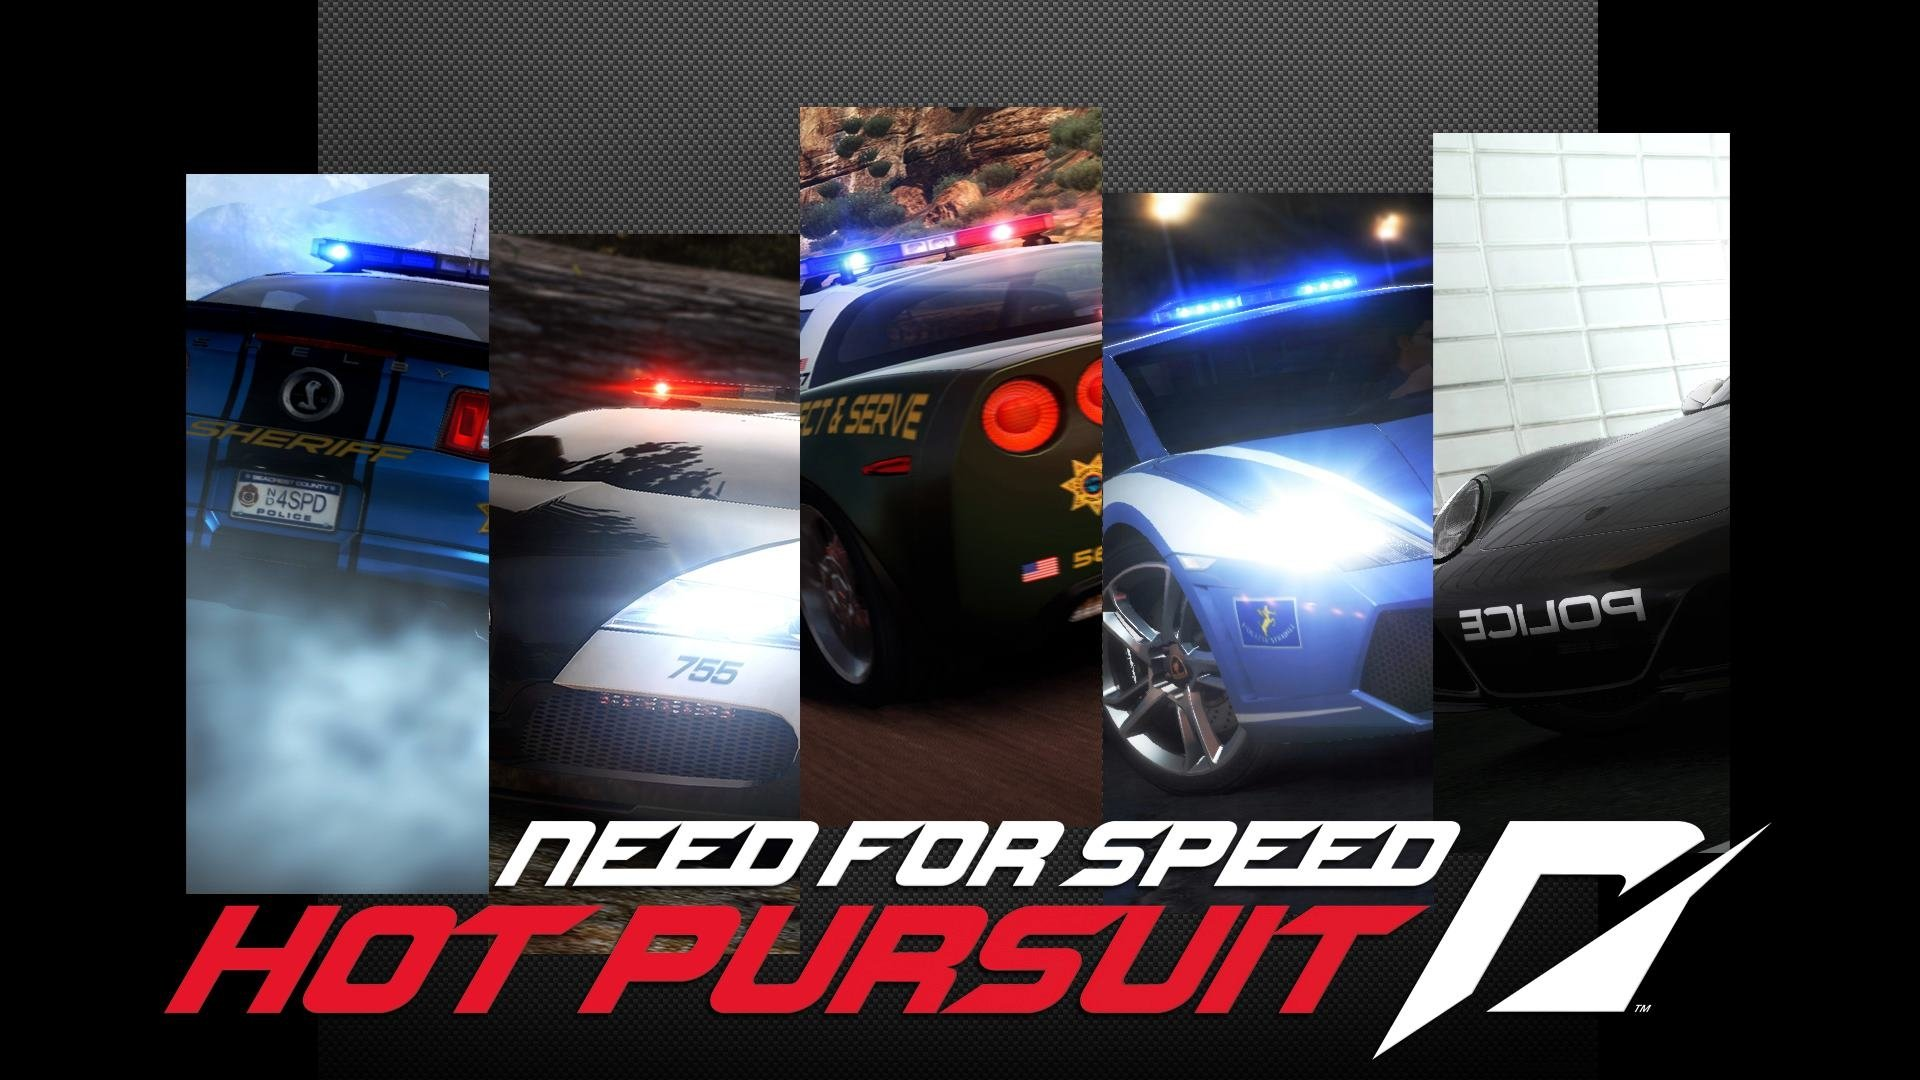 29 Need For Speed Hot Pursuit Hd Wallpapers Background Images